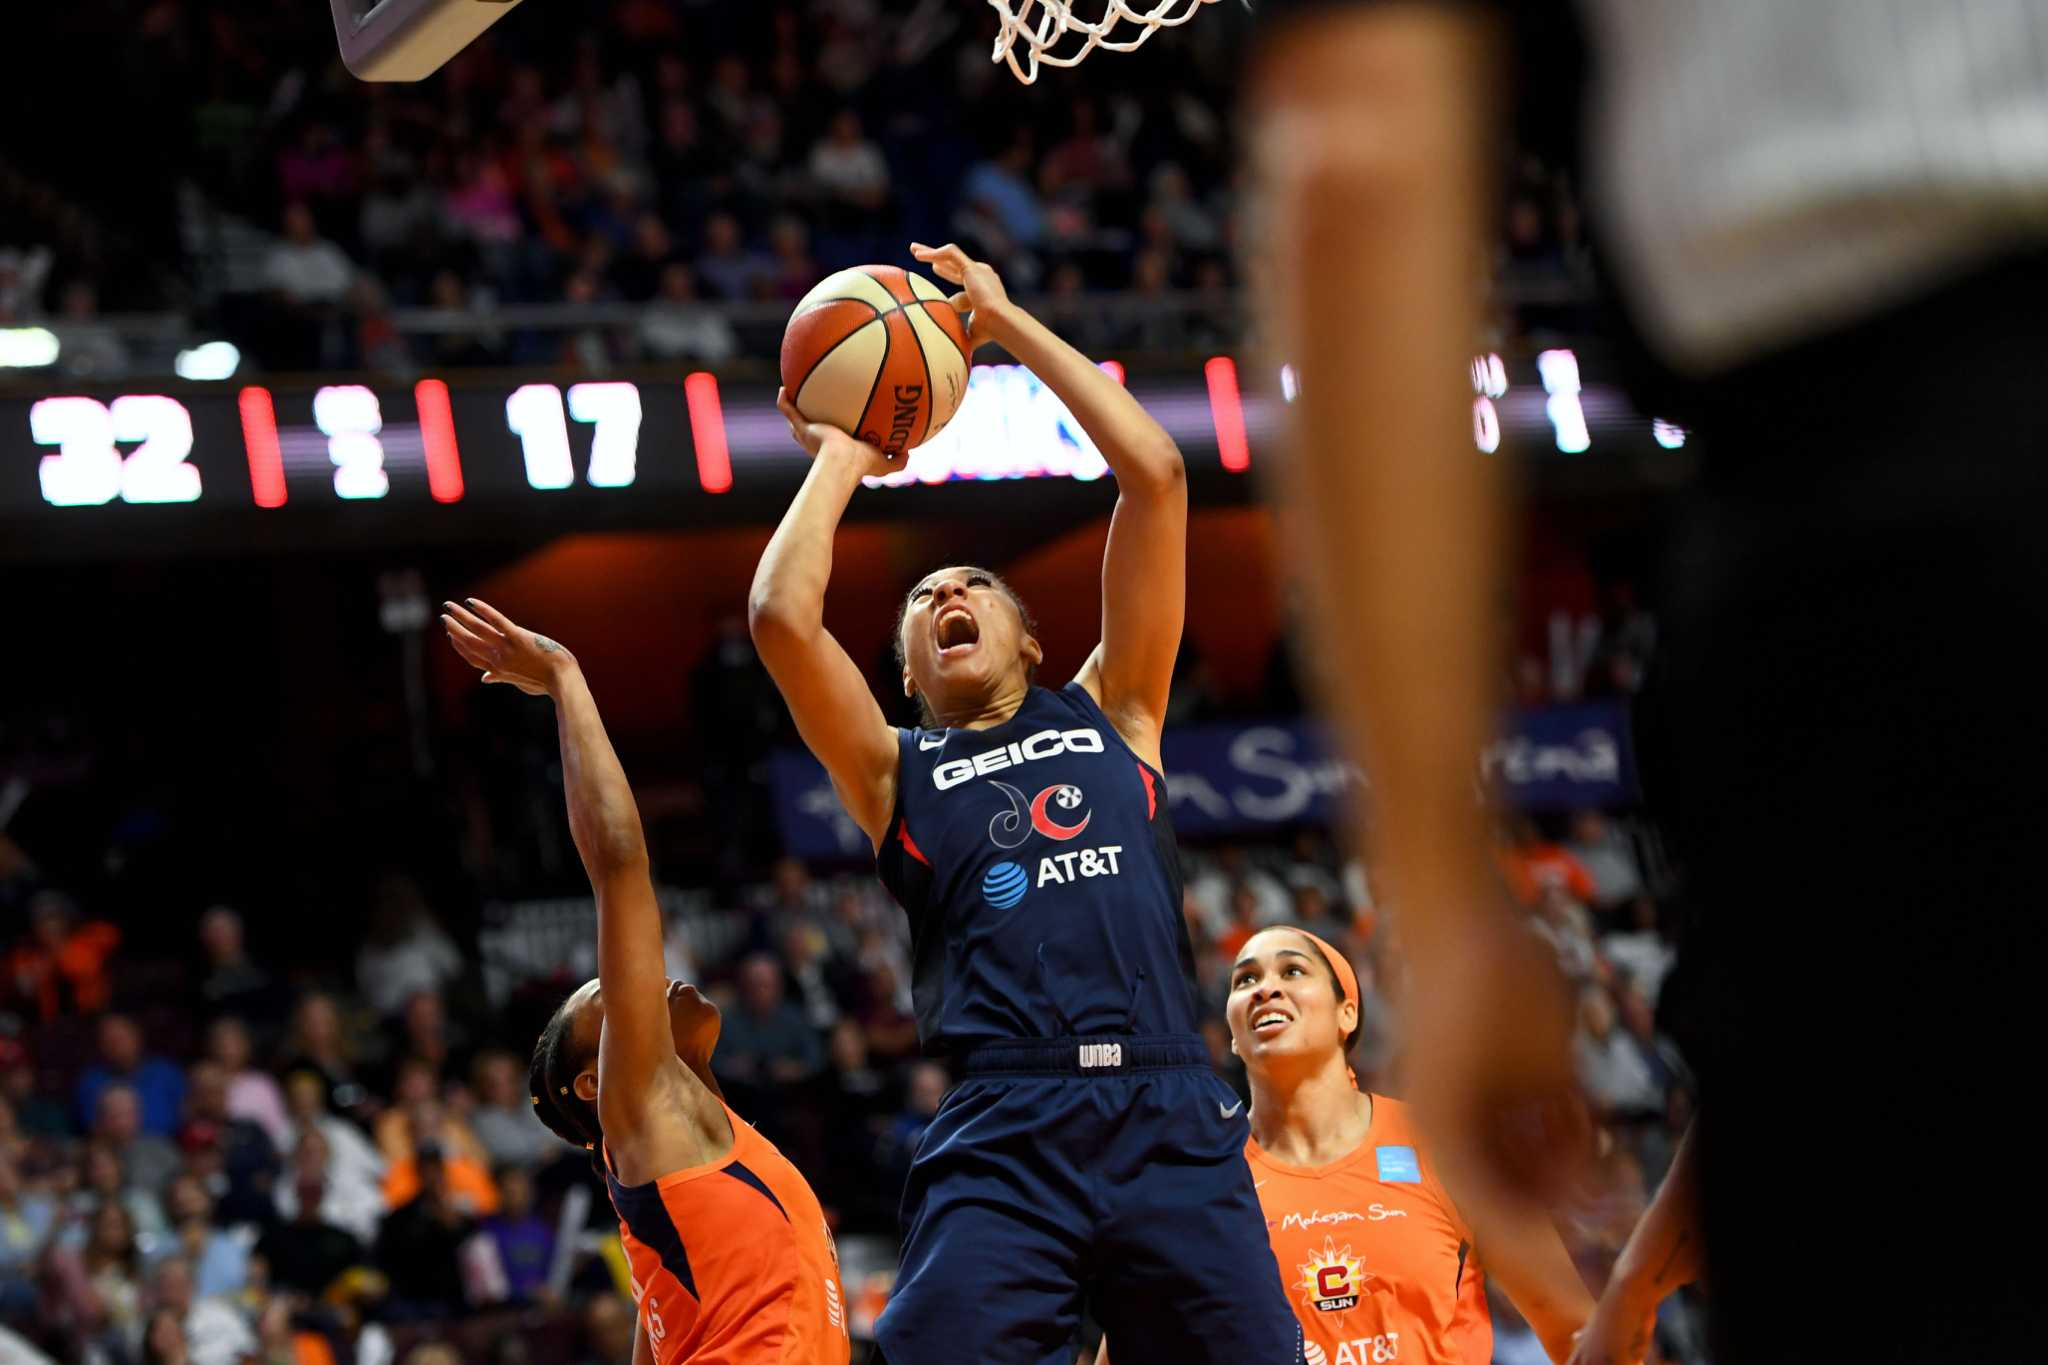 In Game 4, the Mystics came all the way back - and nearly won - thanks to their bench